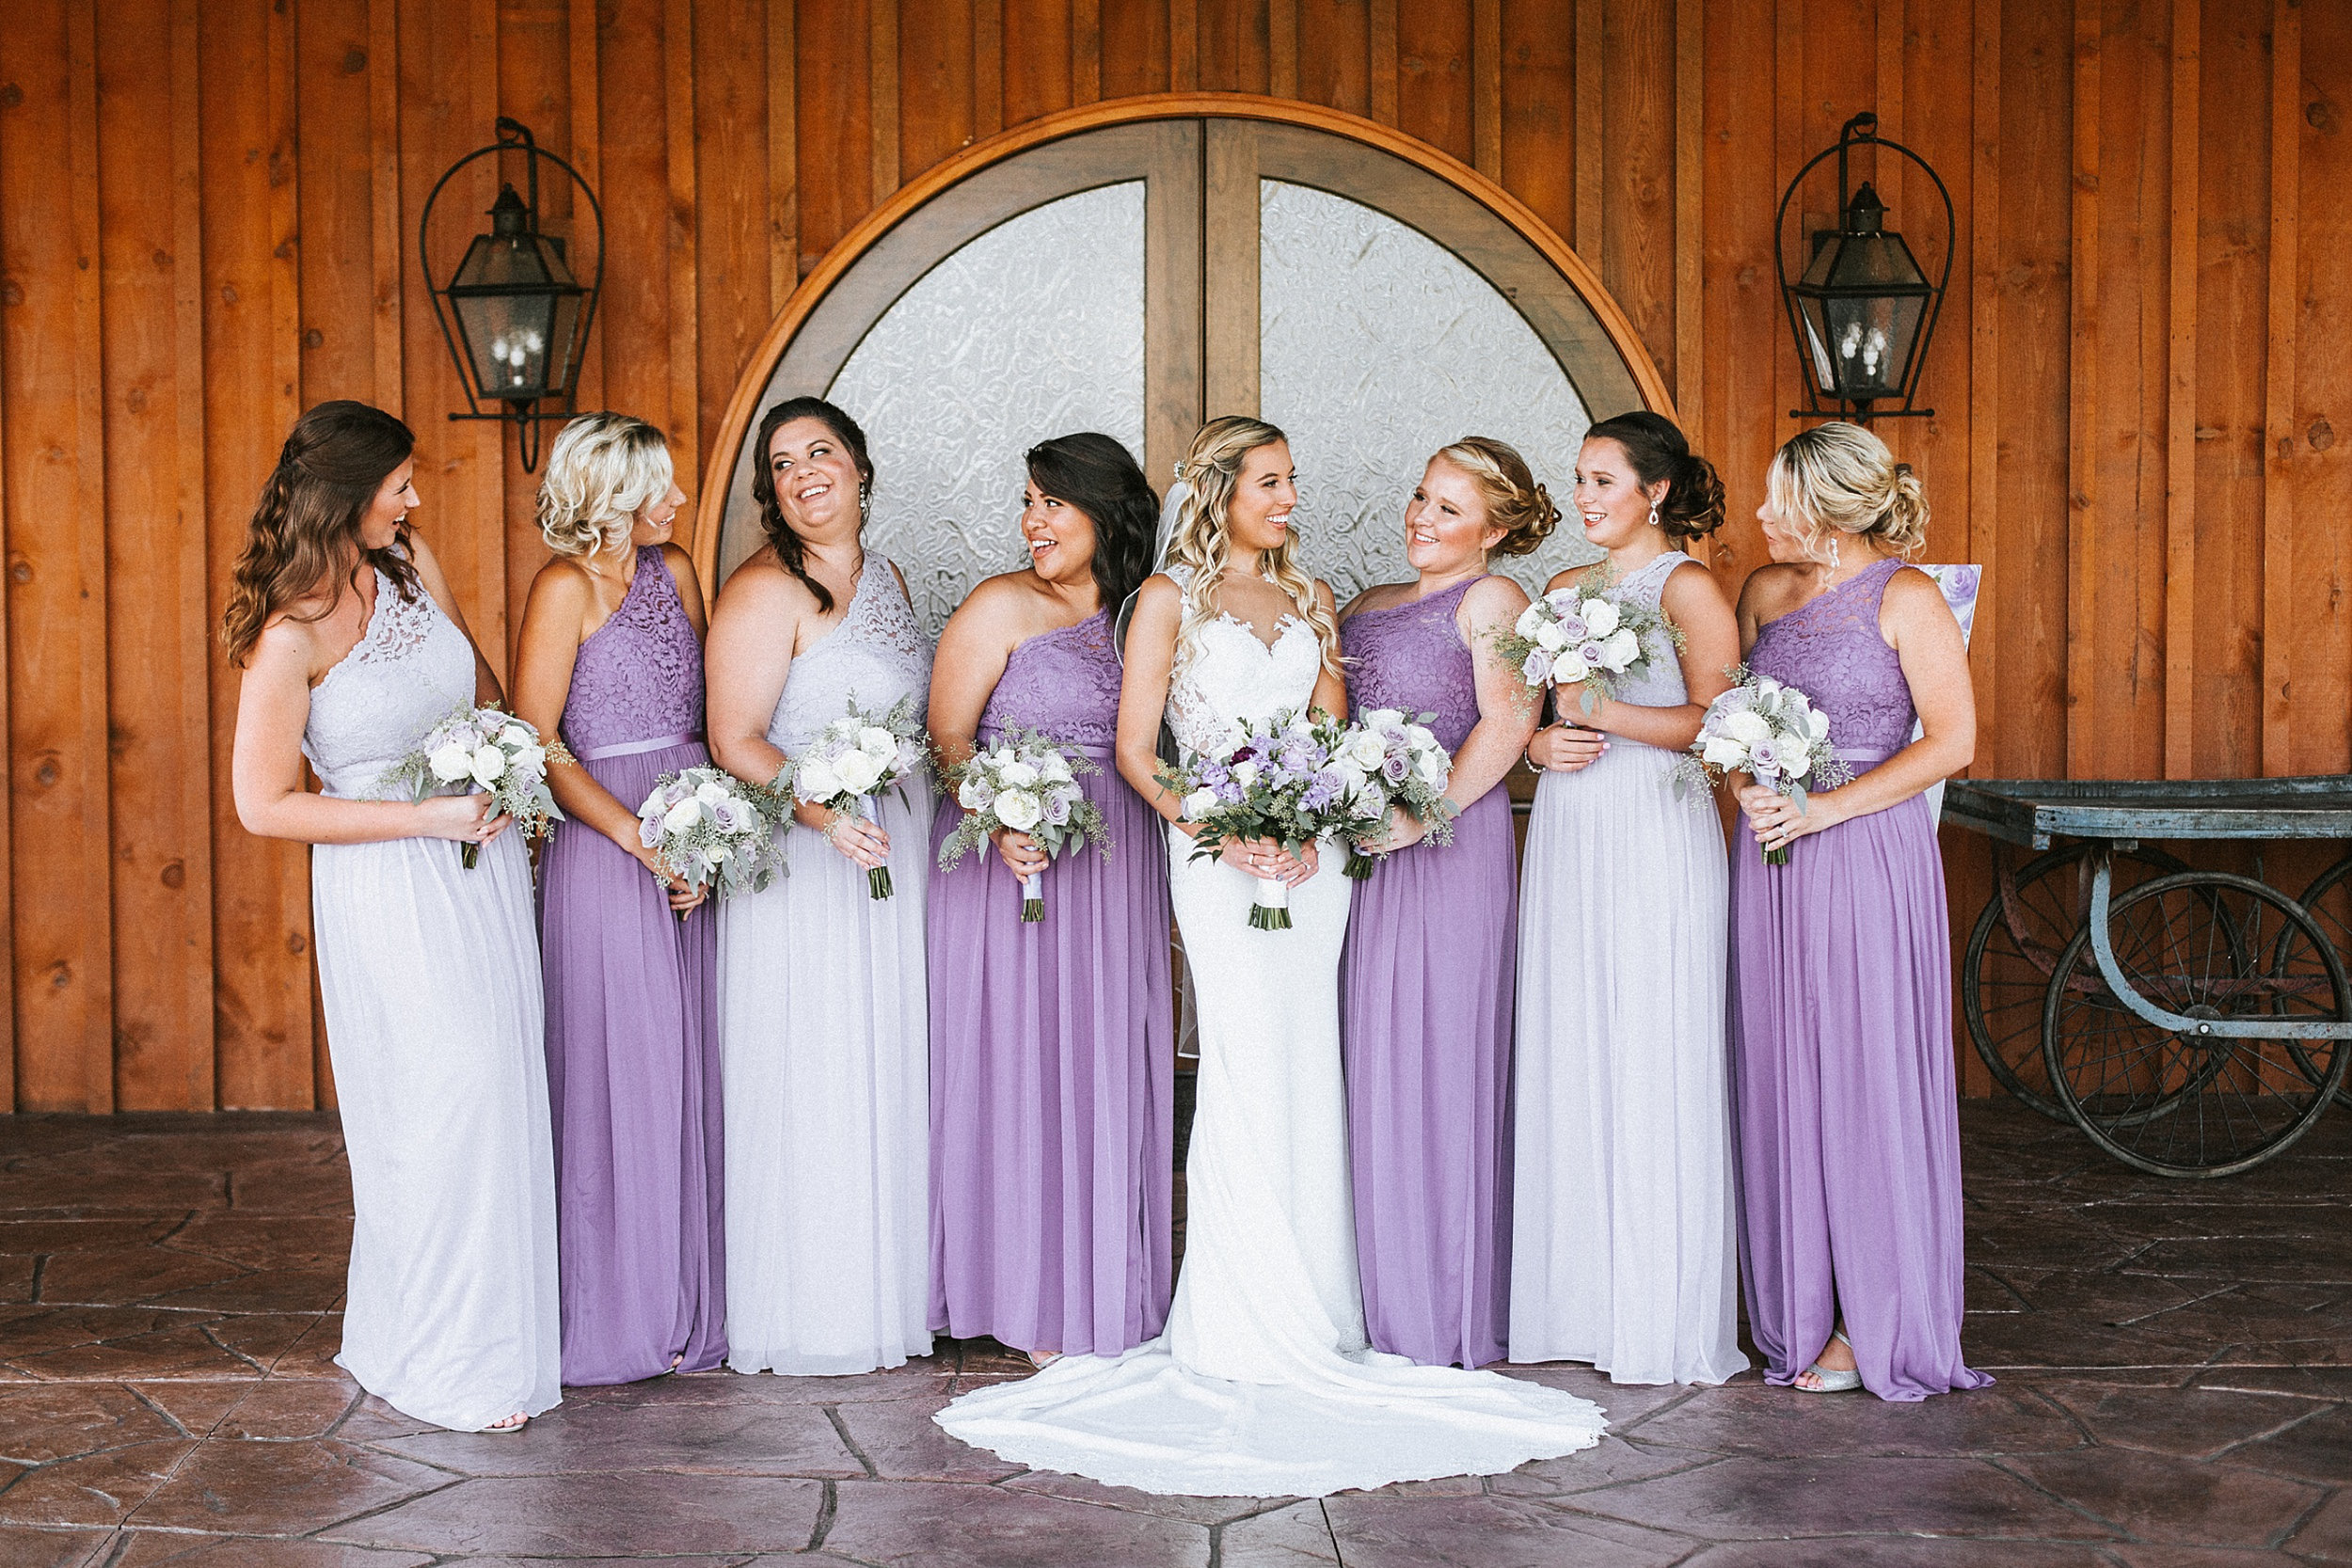 Brooke Townsend Photography - Cincinnati Wedding Photographer (42 of 230).jpg